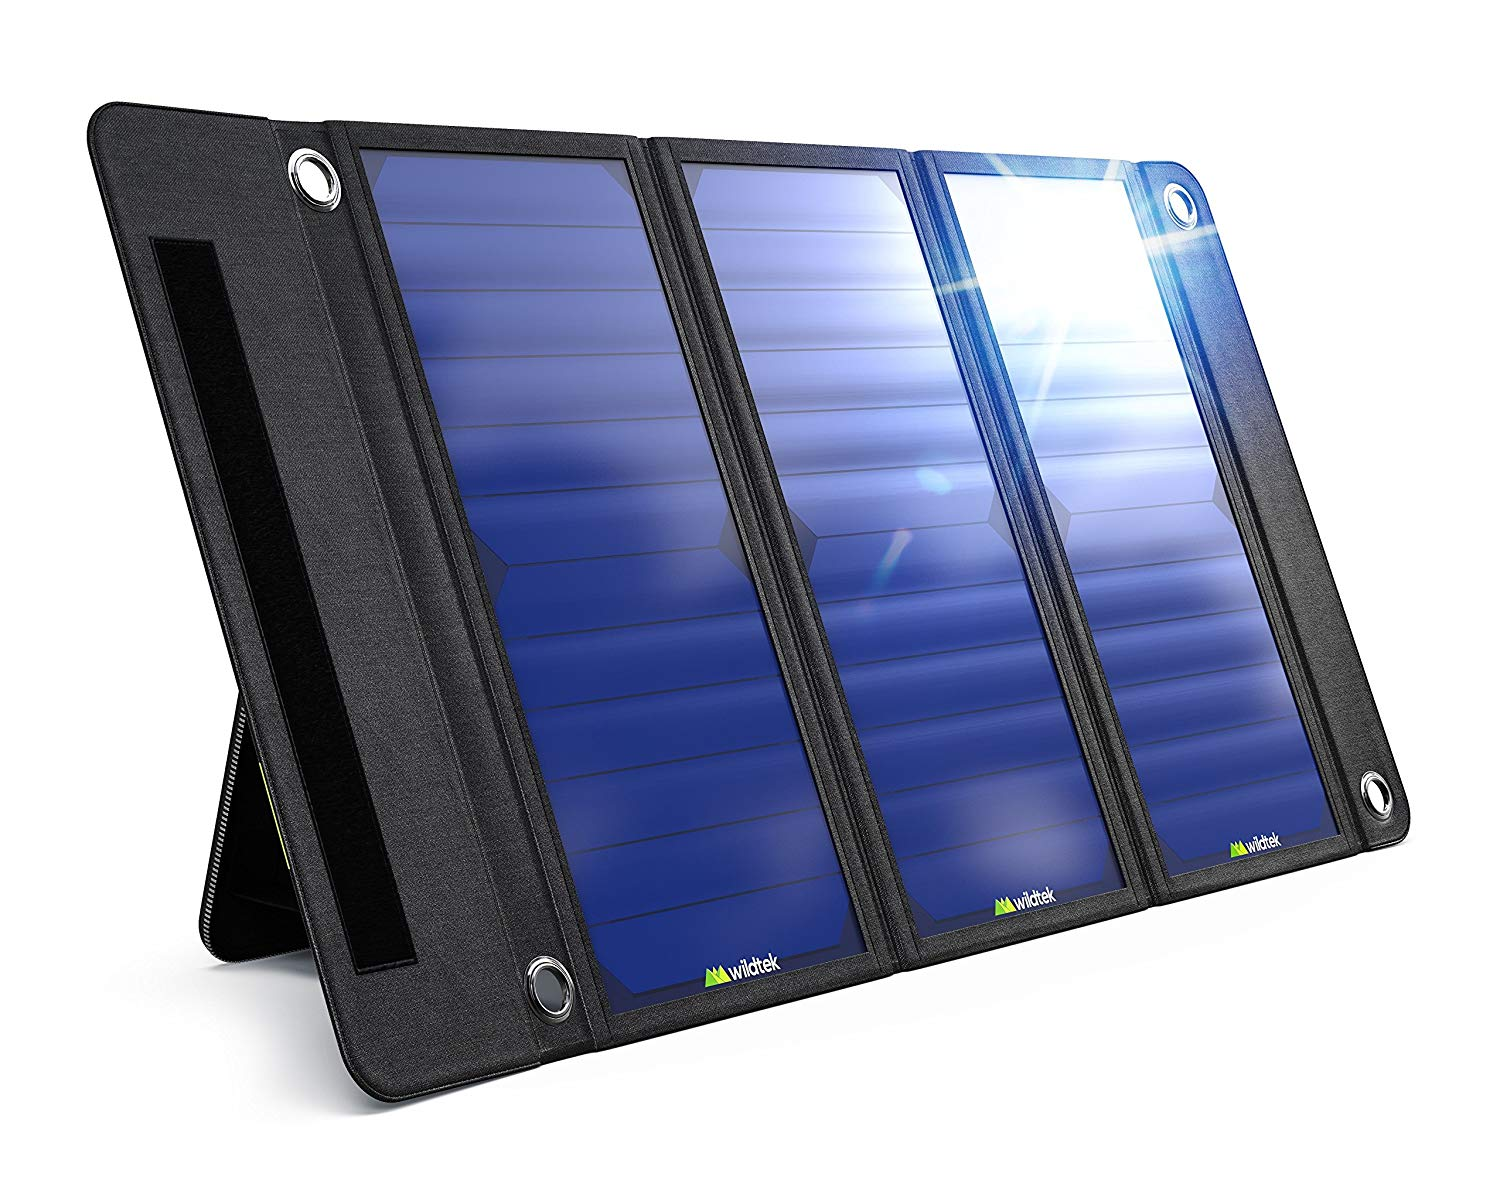 Wildtek-SOURCE-21W-Waterproof-Portable-Solar-Charger-Panel-with-Dual-USB-Ports